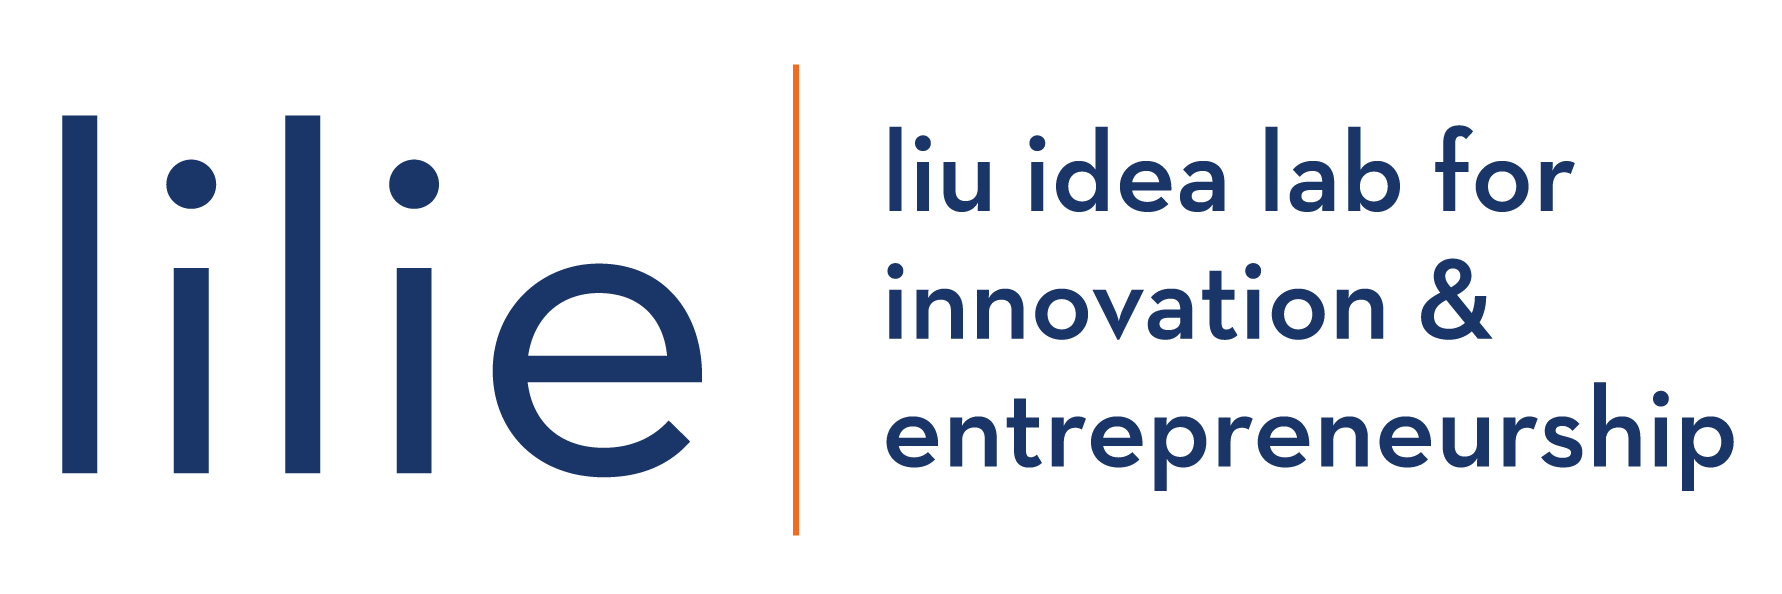 Liu Idea Lab for Innovation & Entrepreneurship at Rice University